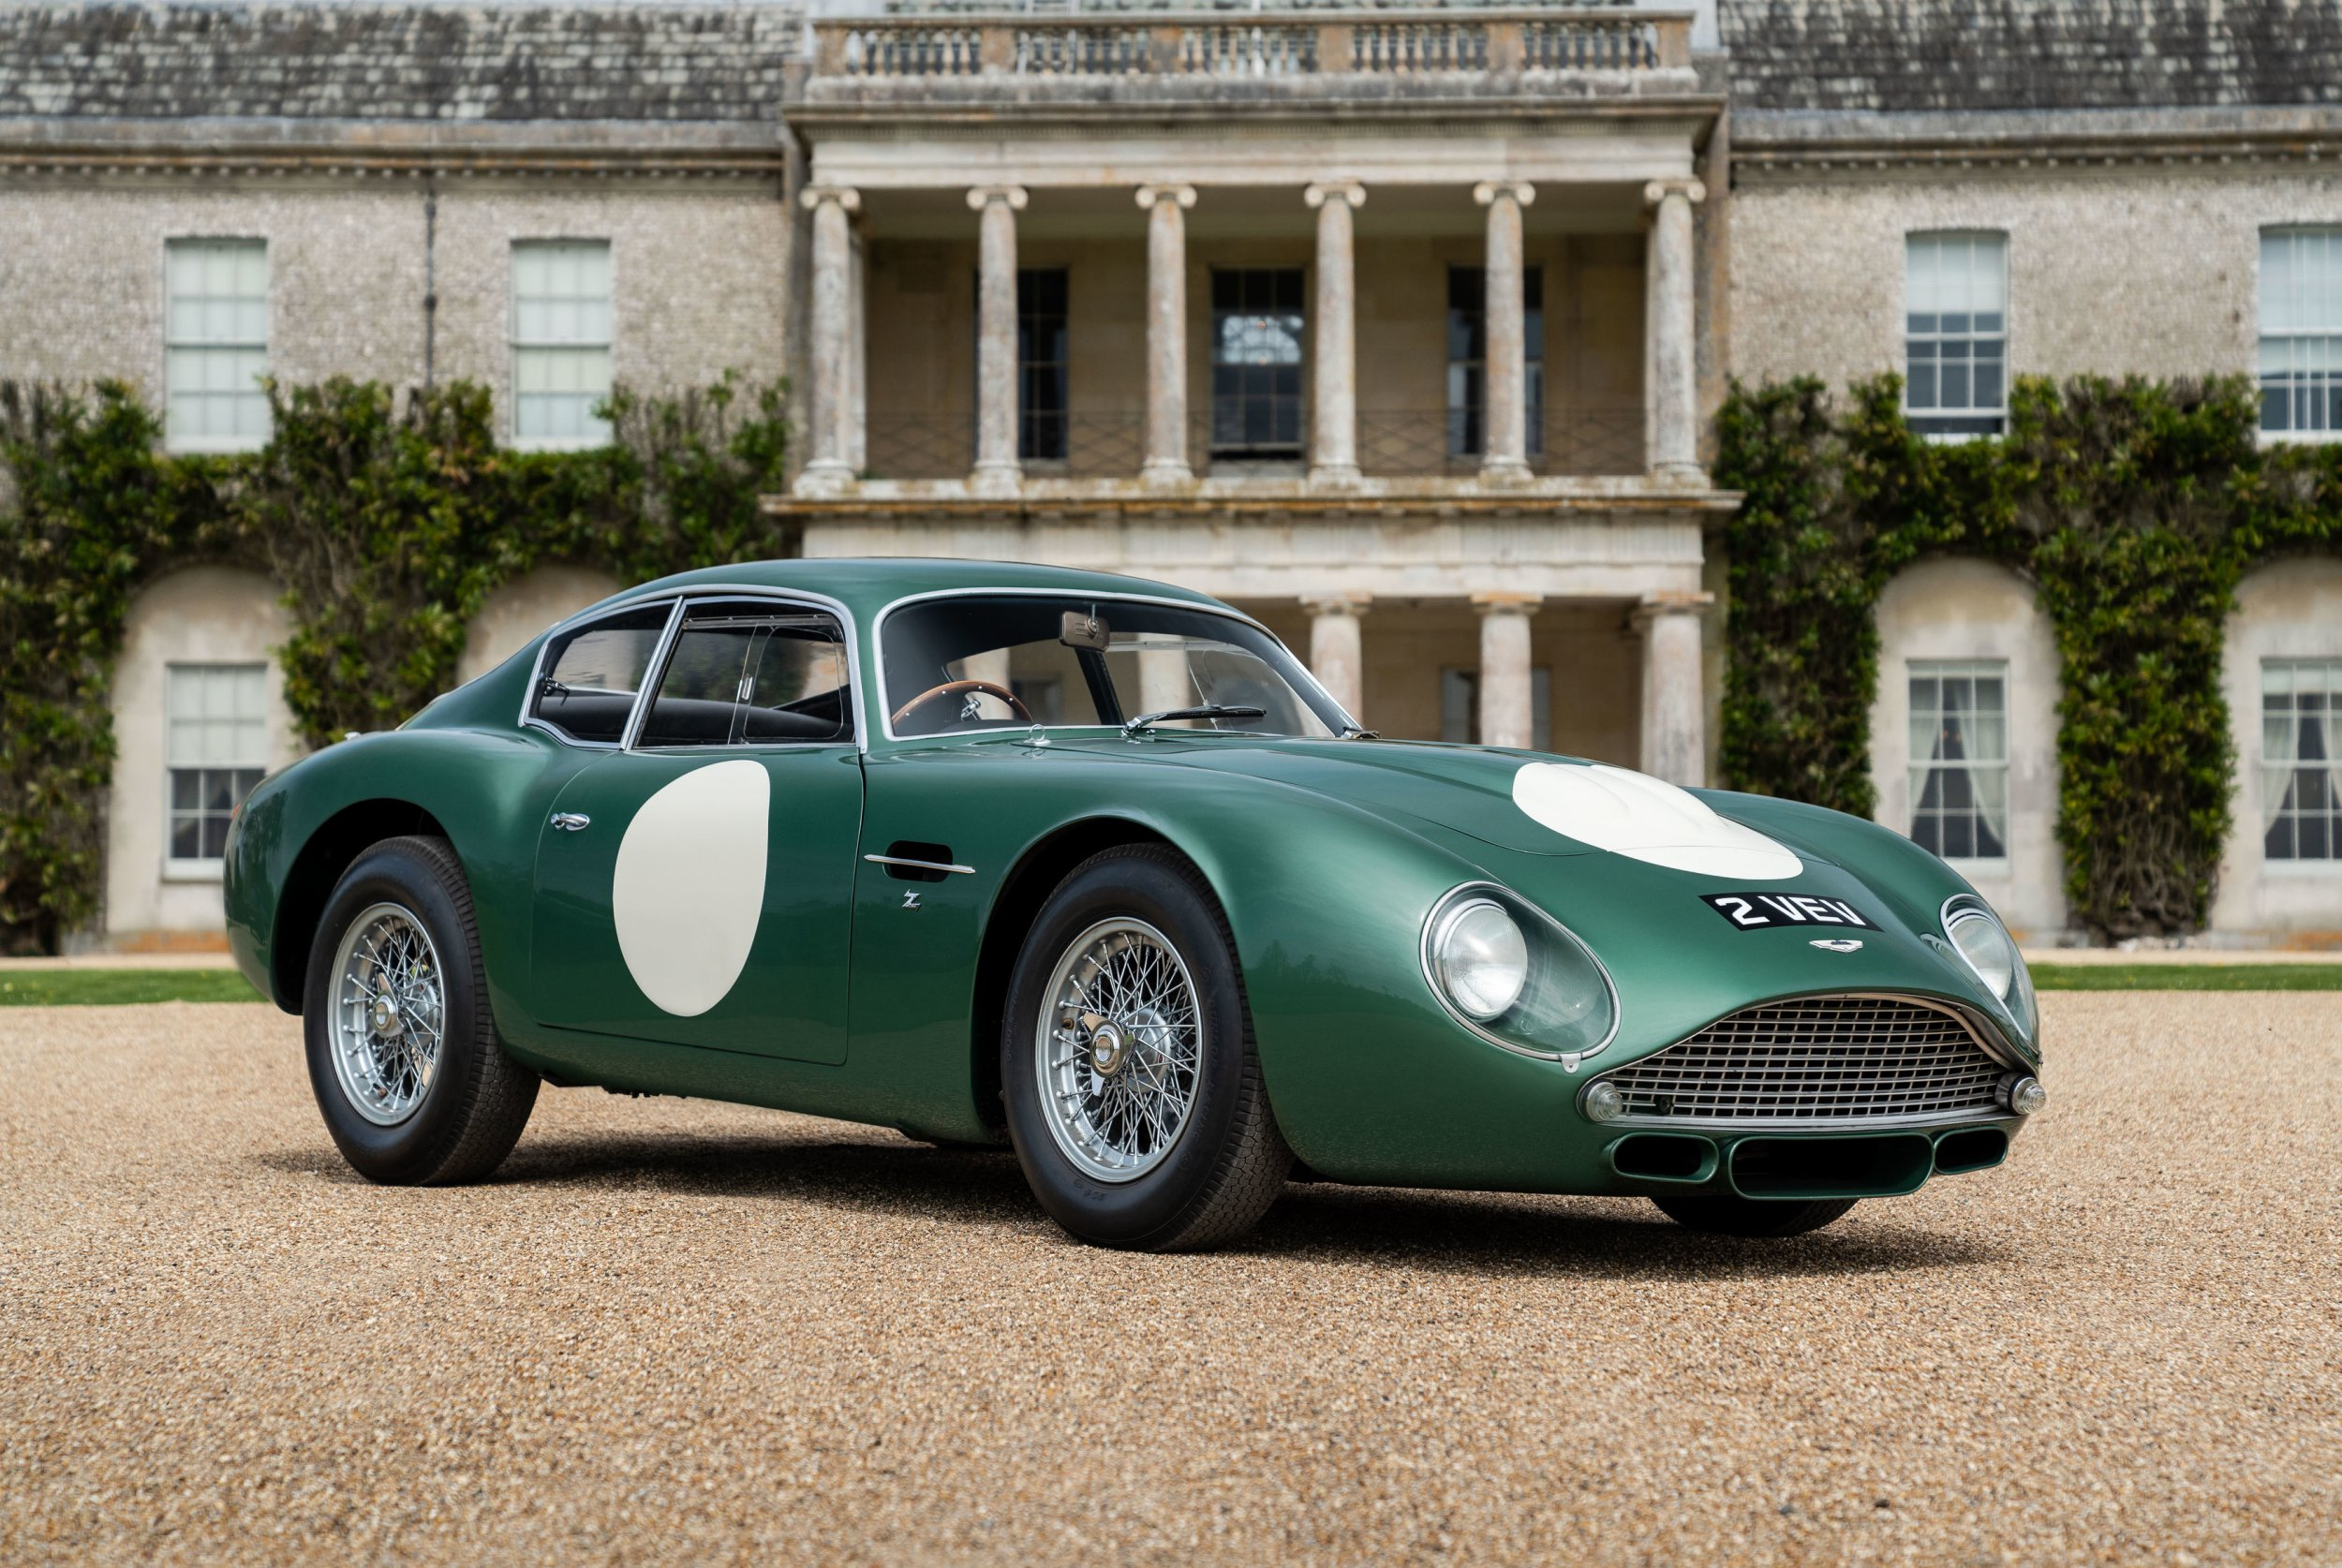 Classic Aston Martin sells for record-breaking £10,000,000